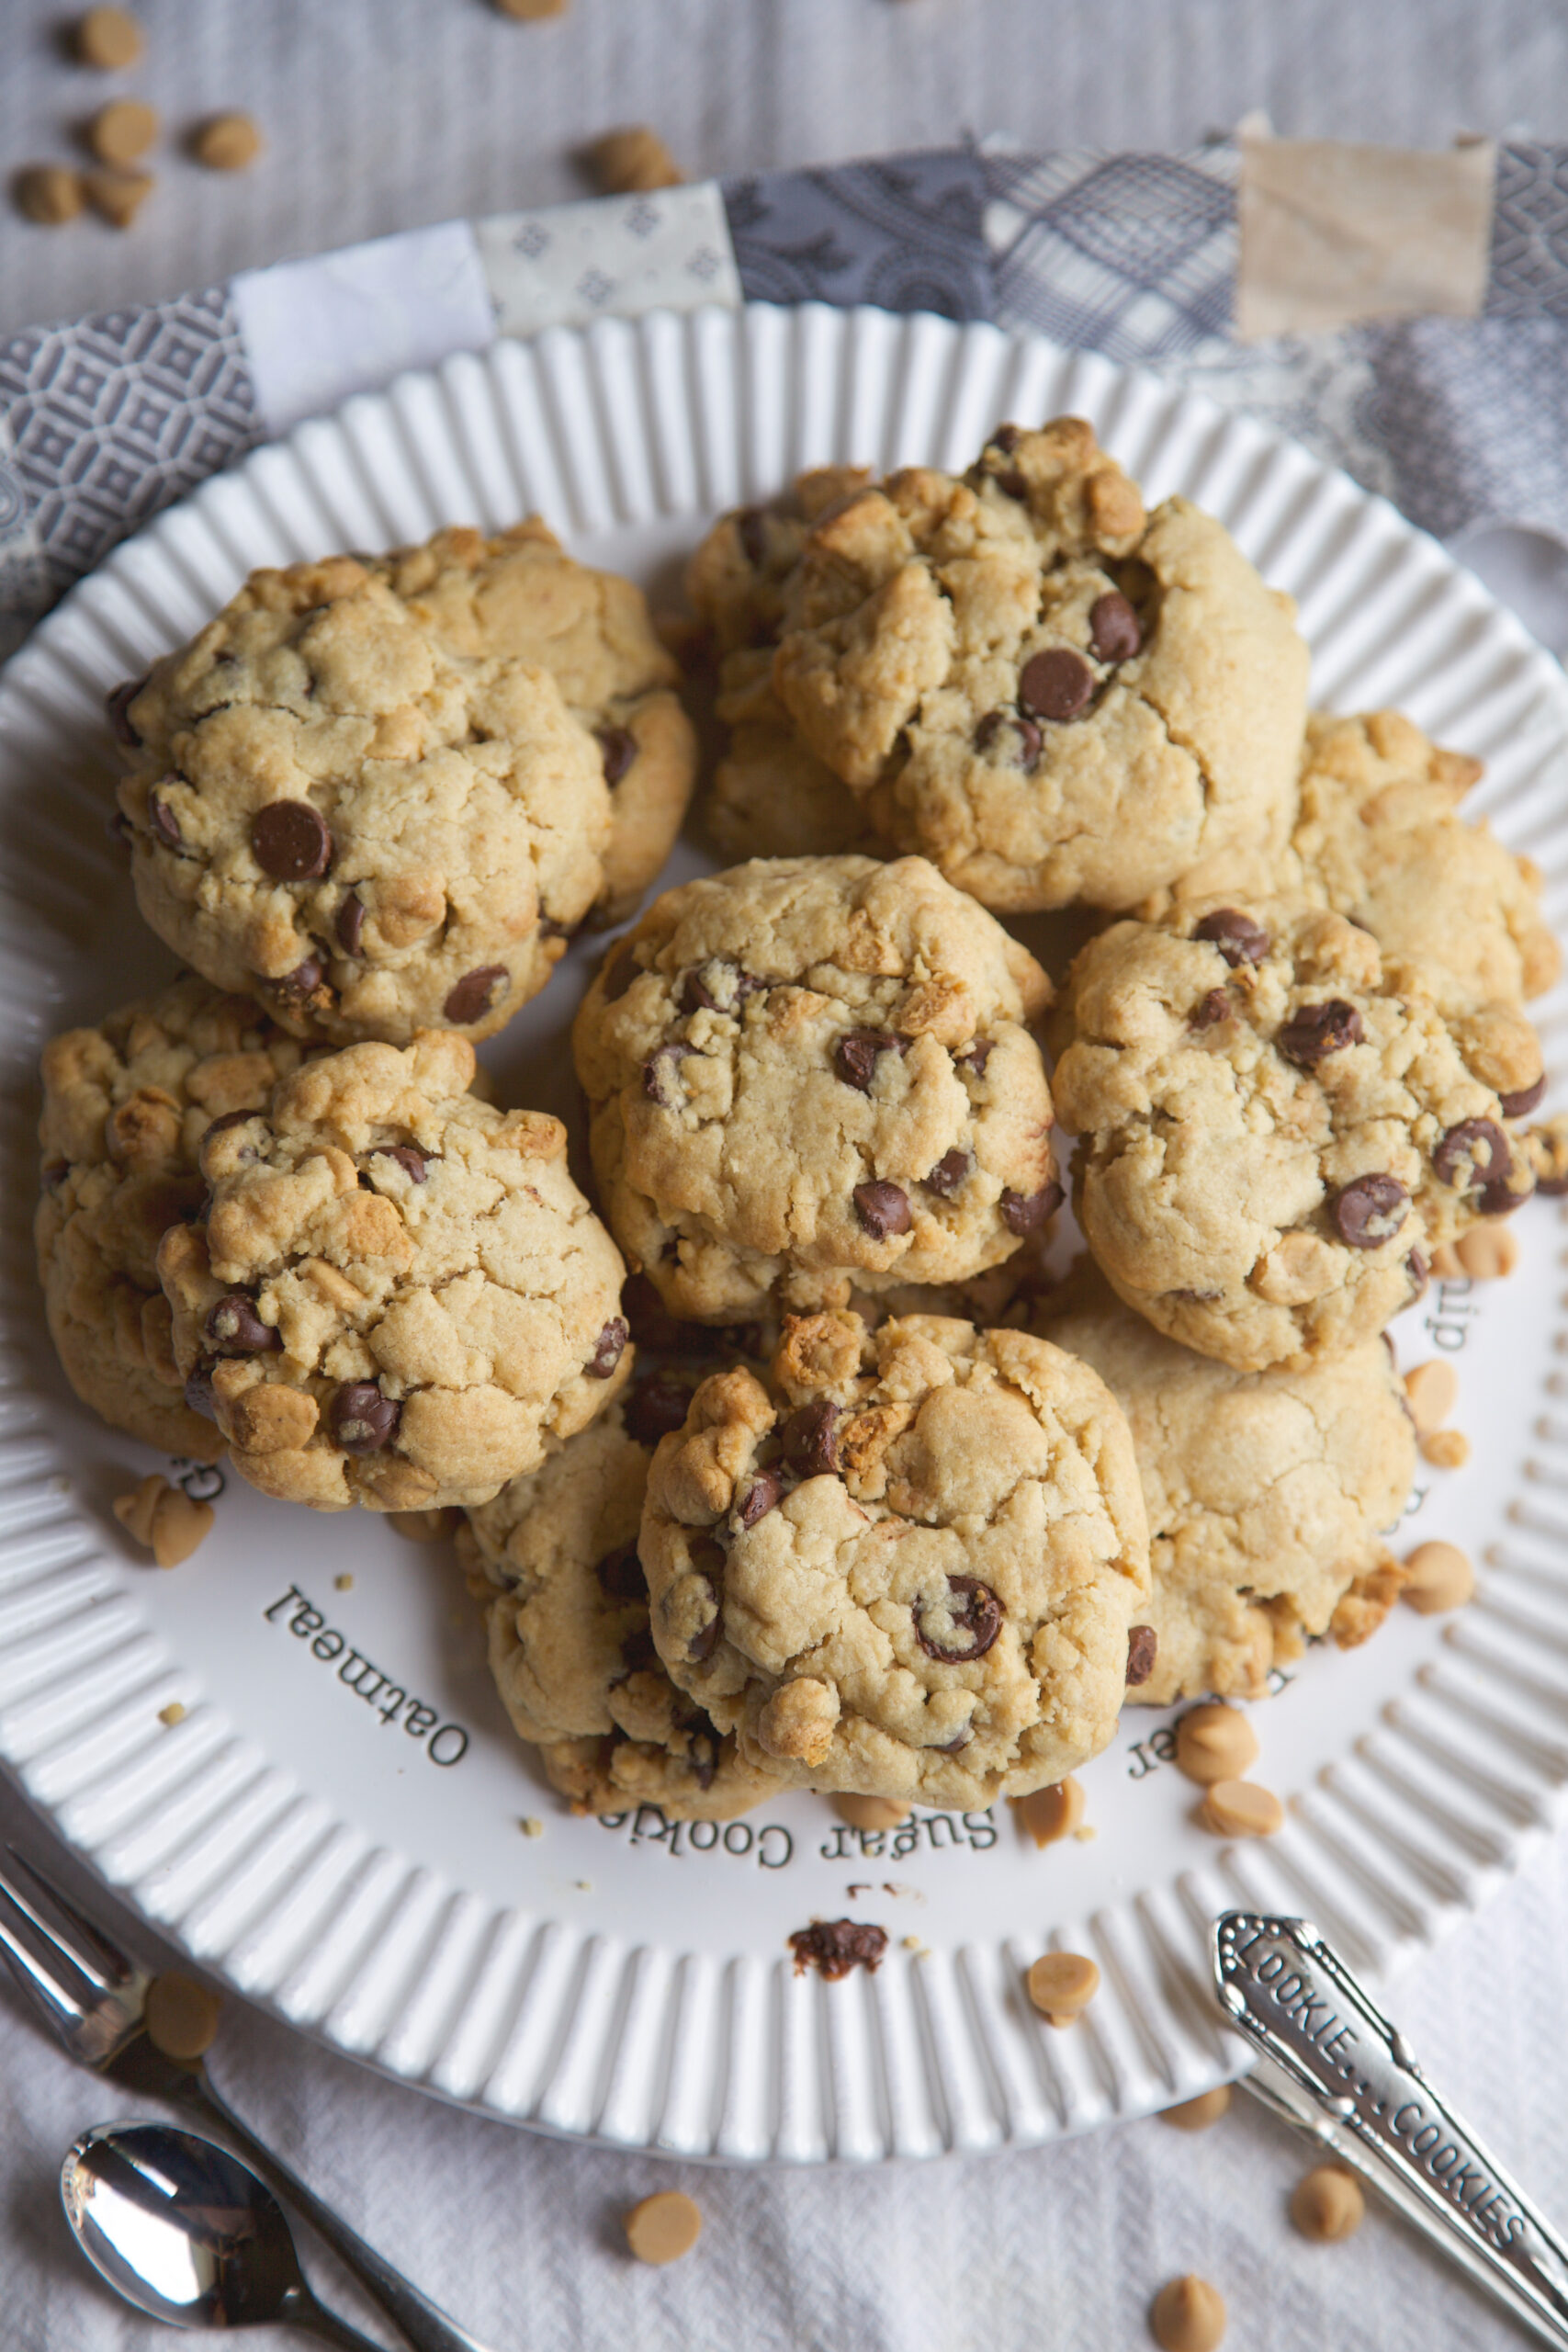 Chocolate chip tahini cookies - MSST